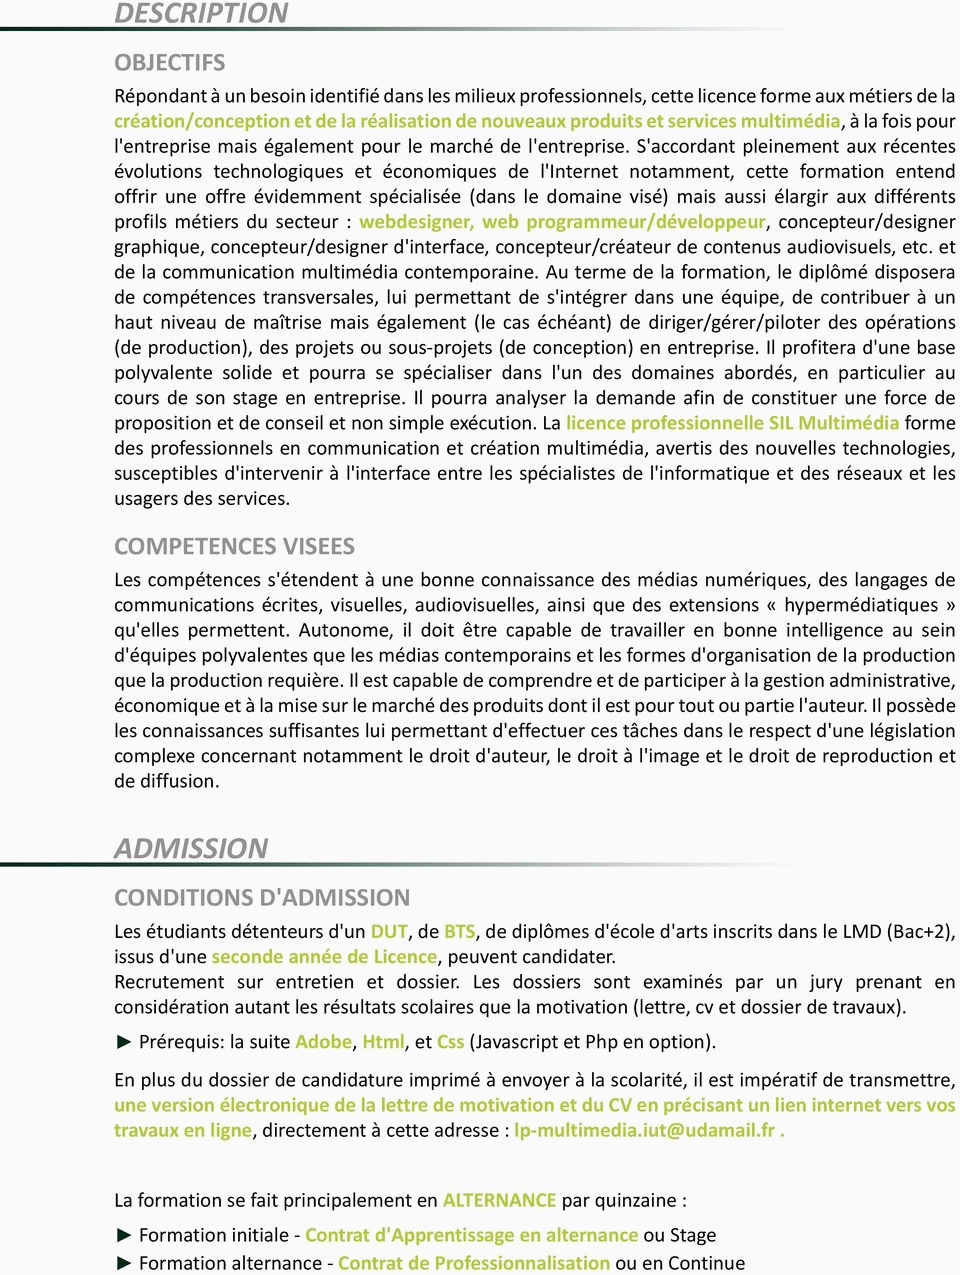 Lettre De Motivation formation Alternance 80 Lettre De Motivation formation Developpeur Web